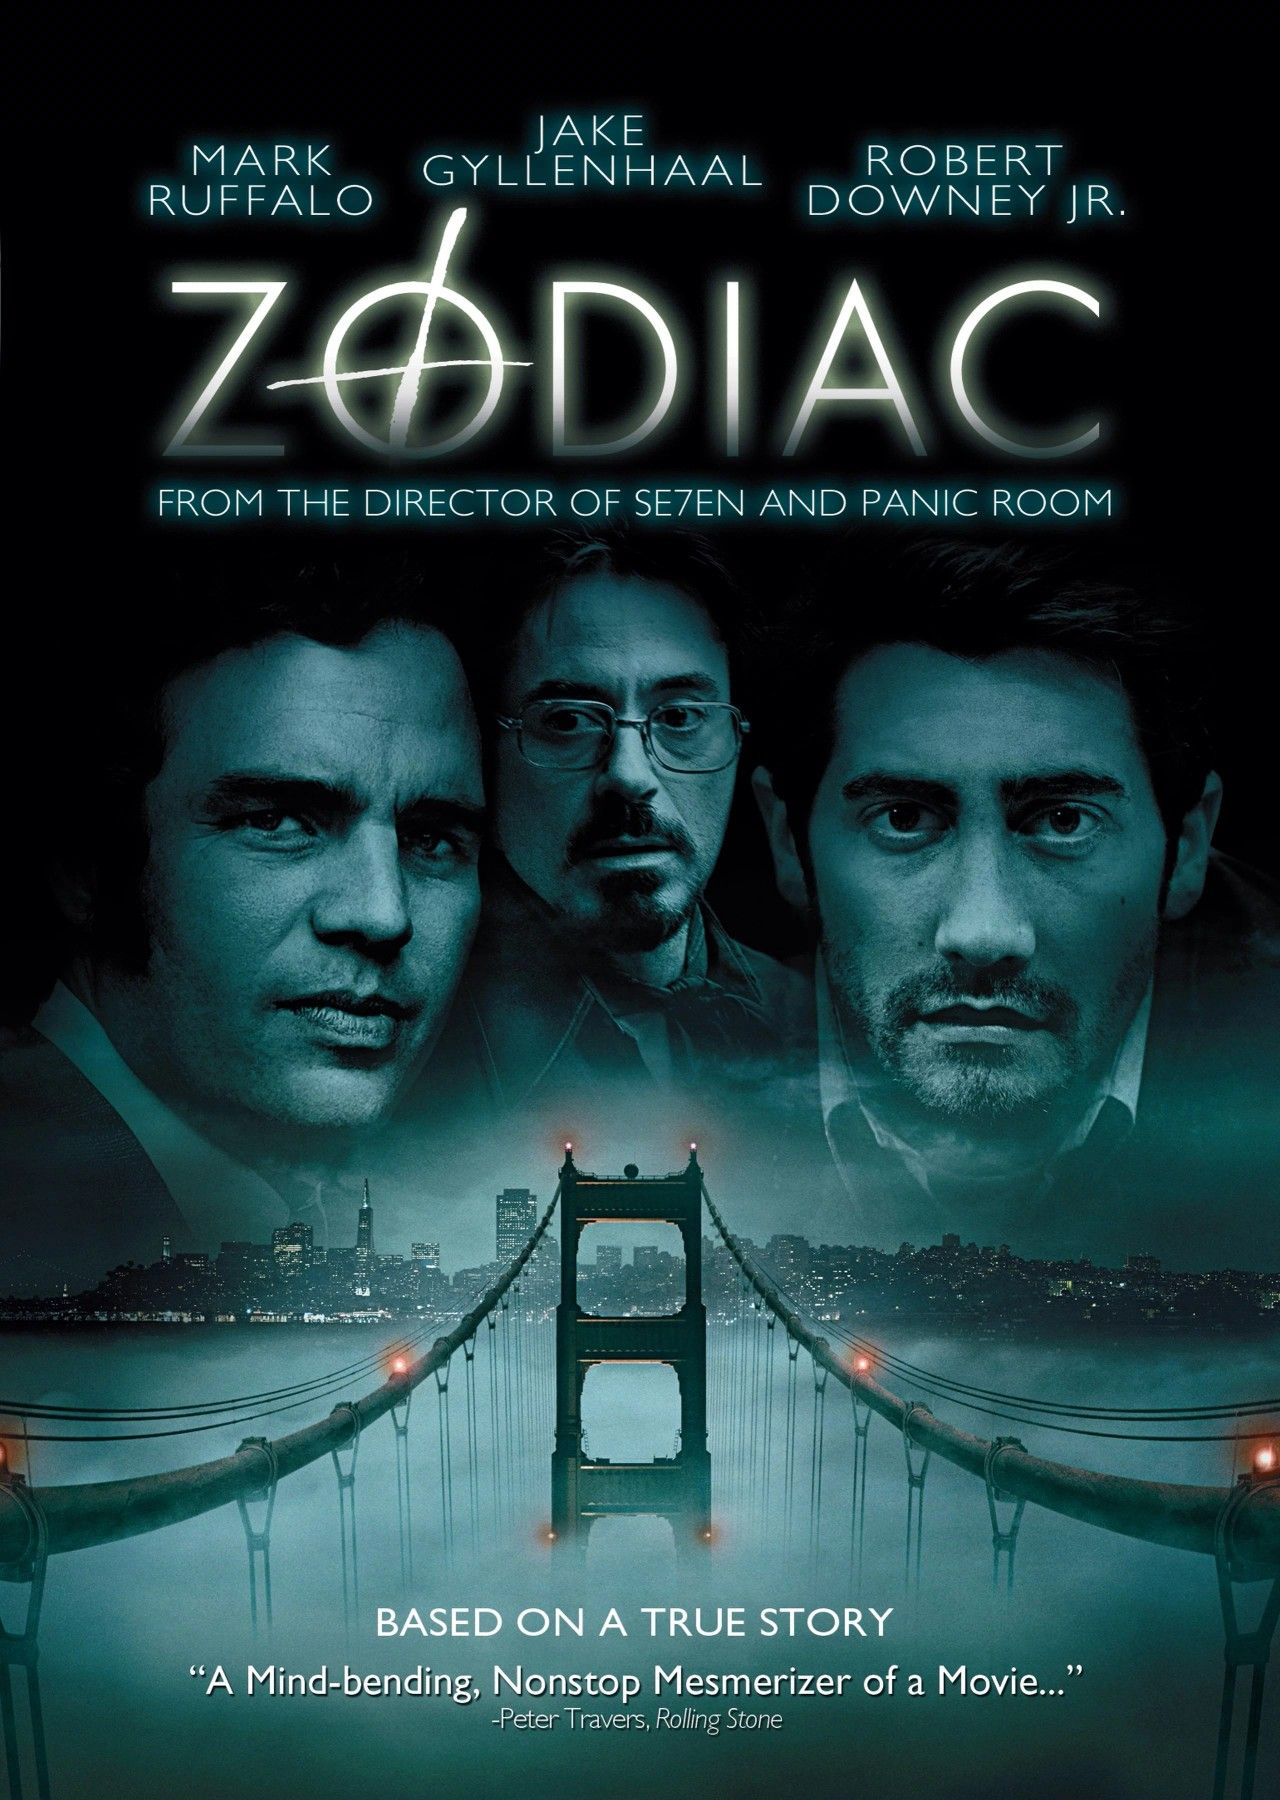 Zodiac Thriller Movies Zodiac Film True Stories